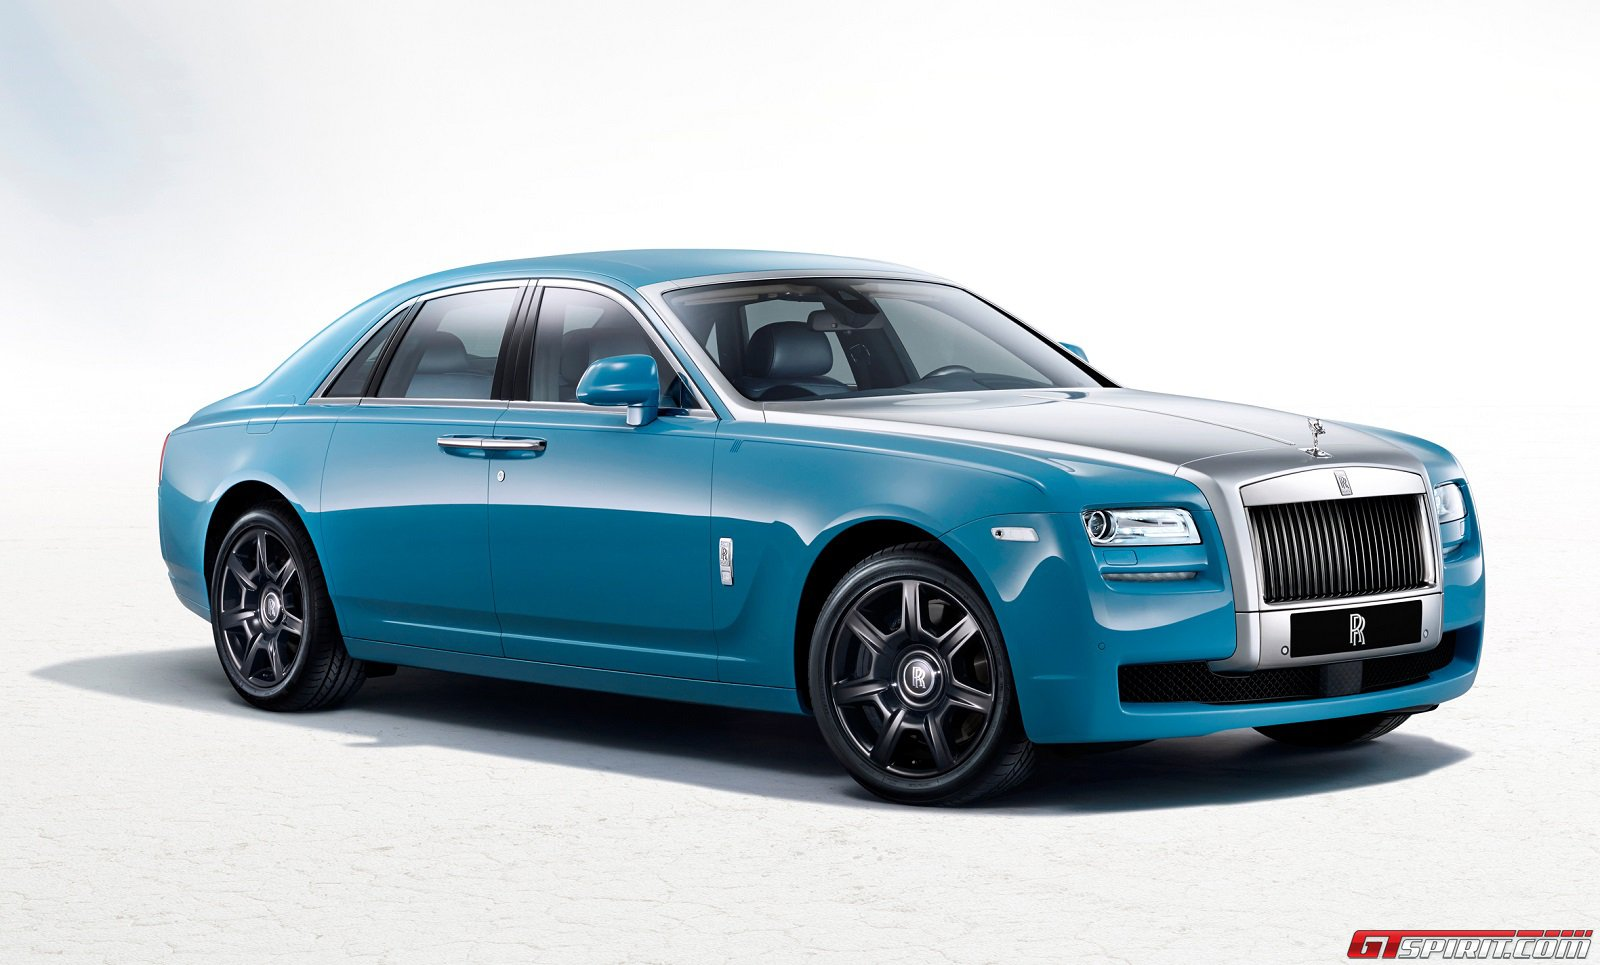 2013 Rolls royce Ghost #8